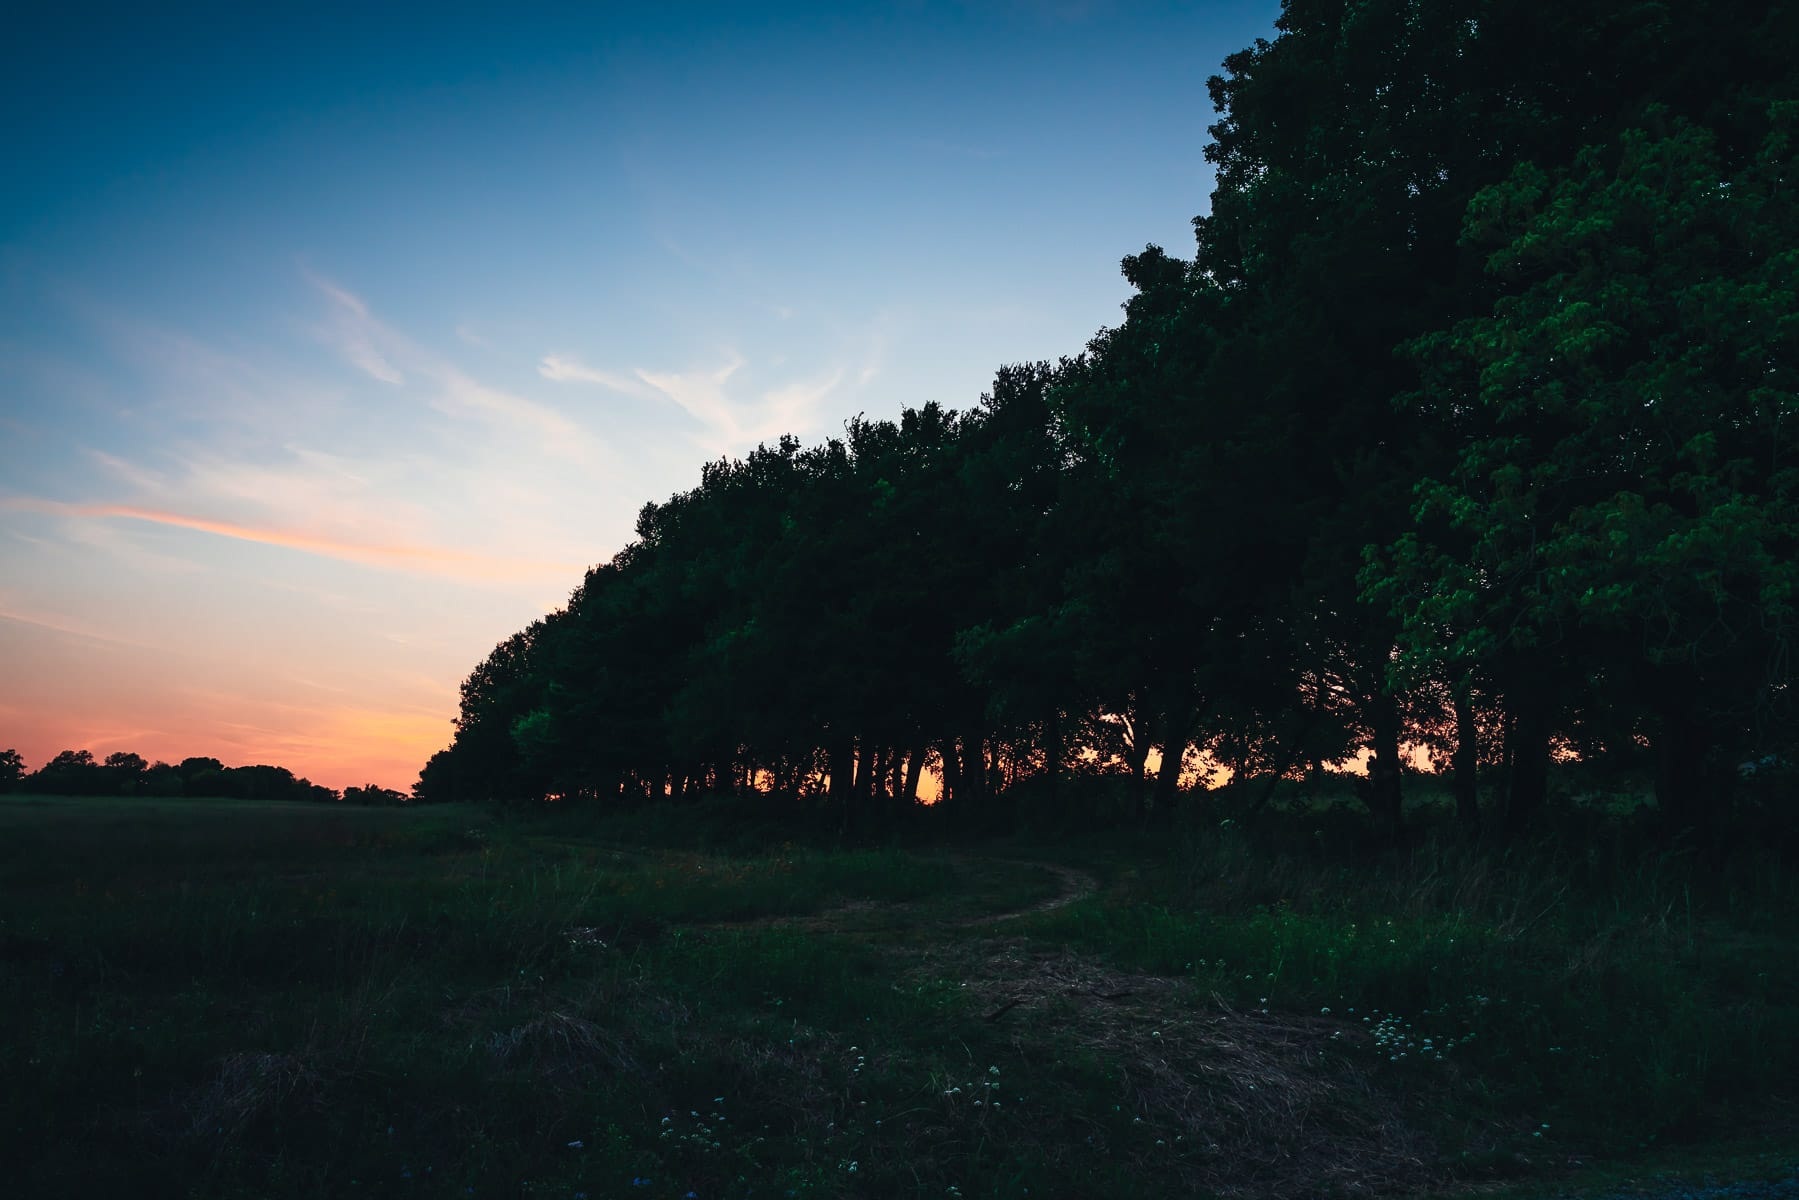 The sun sets on the far side of a line of trees at McKinney, Texas' Erwin Park.